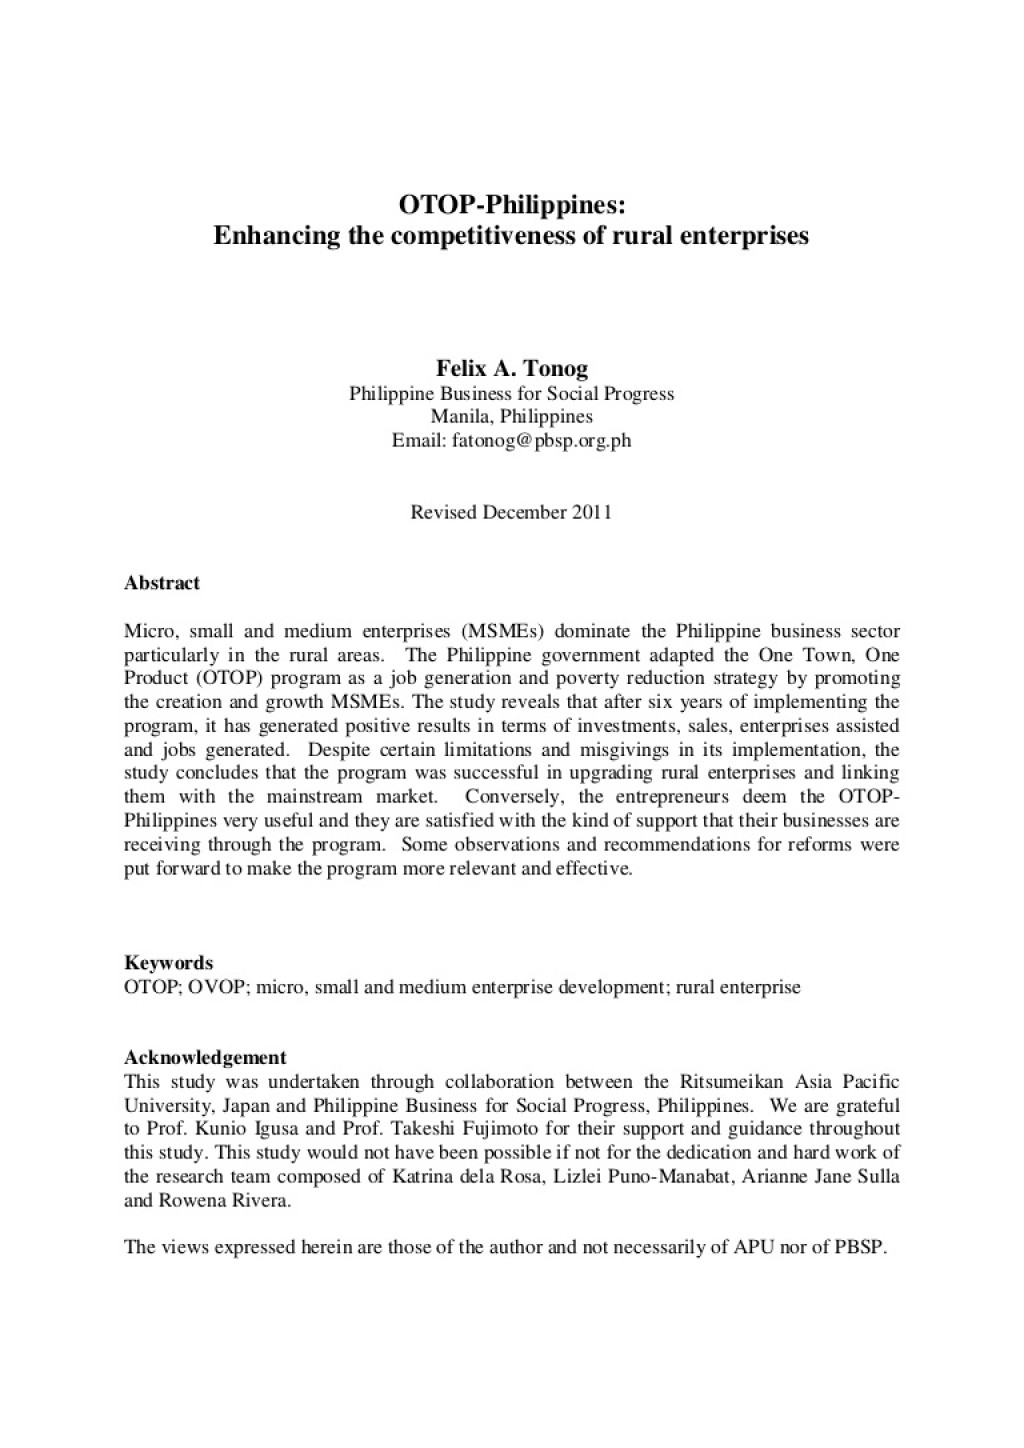 011 Research Paper Theotop Philippines2011a4 Phpapp02 Thumbnail Poverty In The Philippines Remarkable Abstract Large